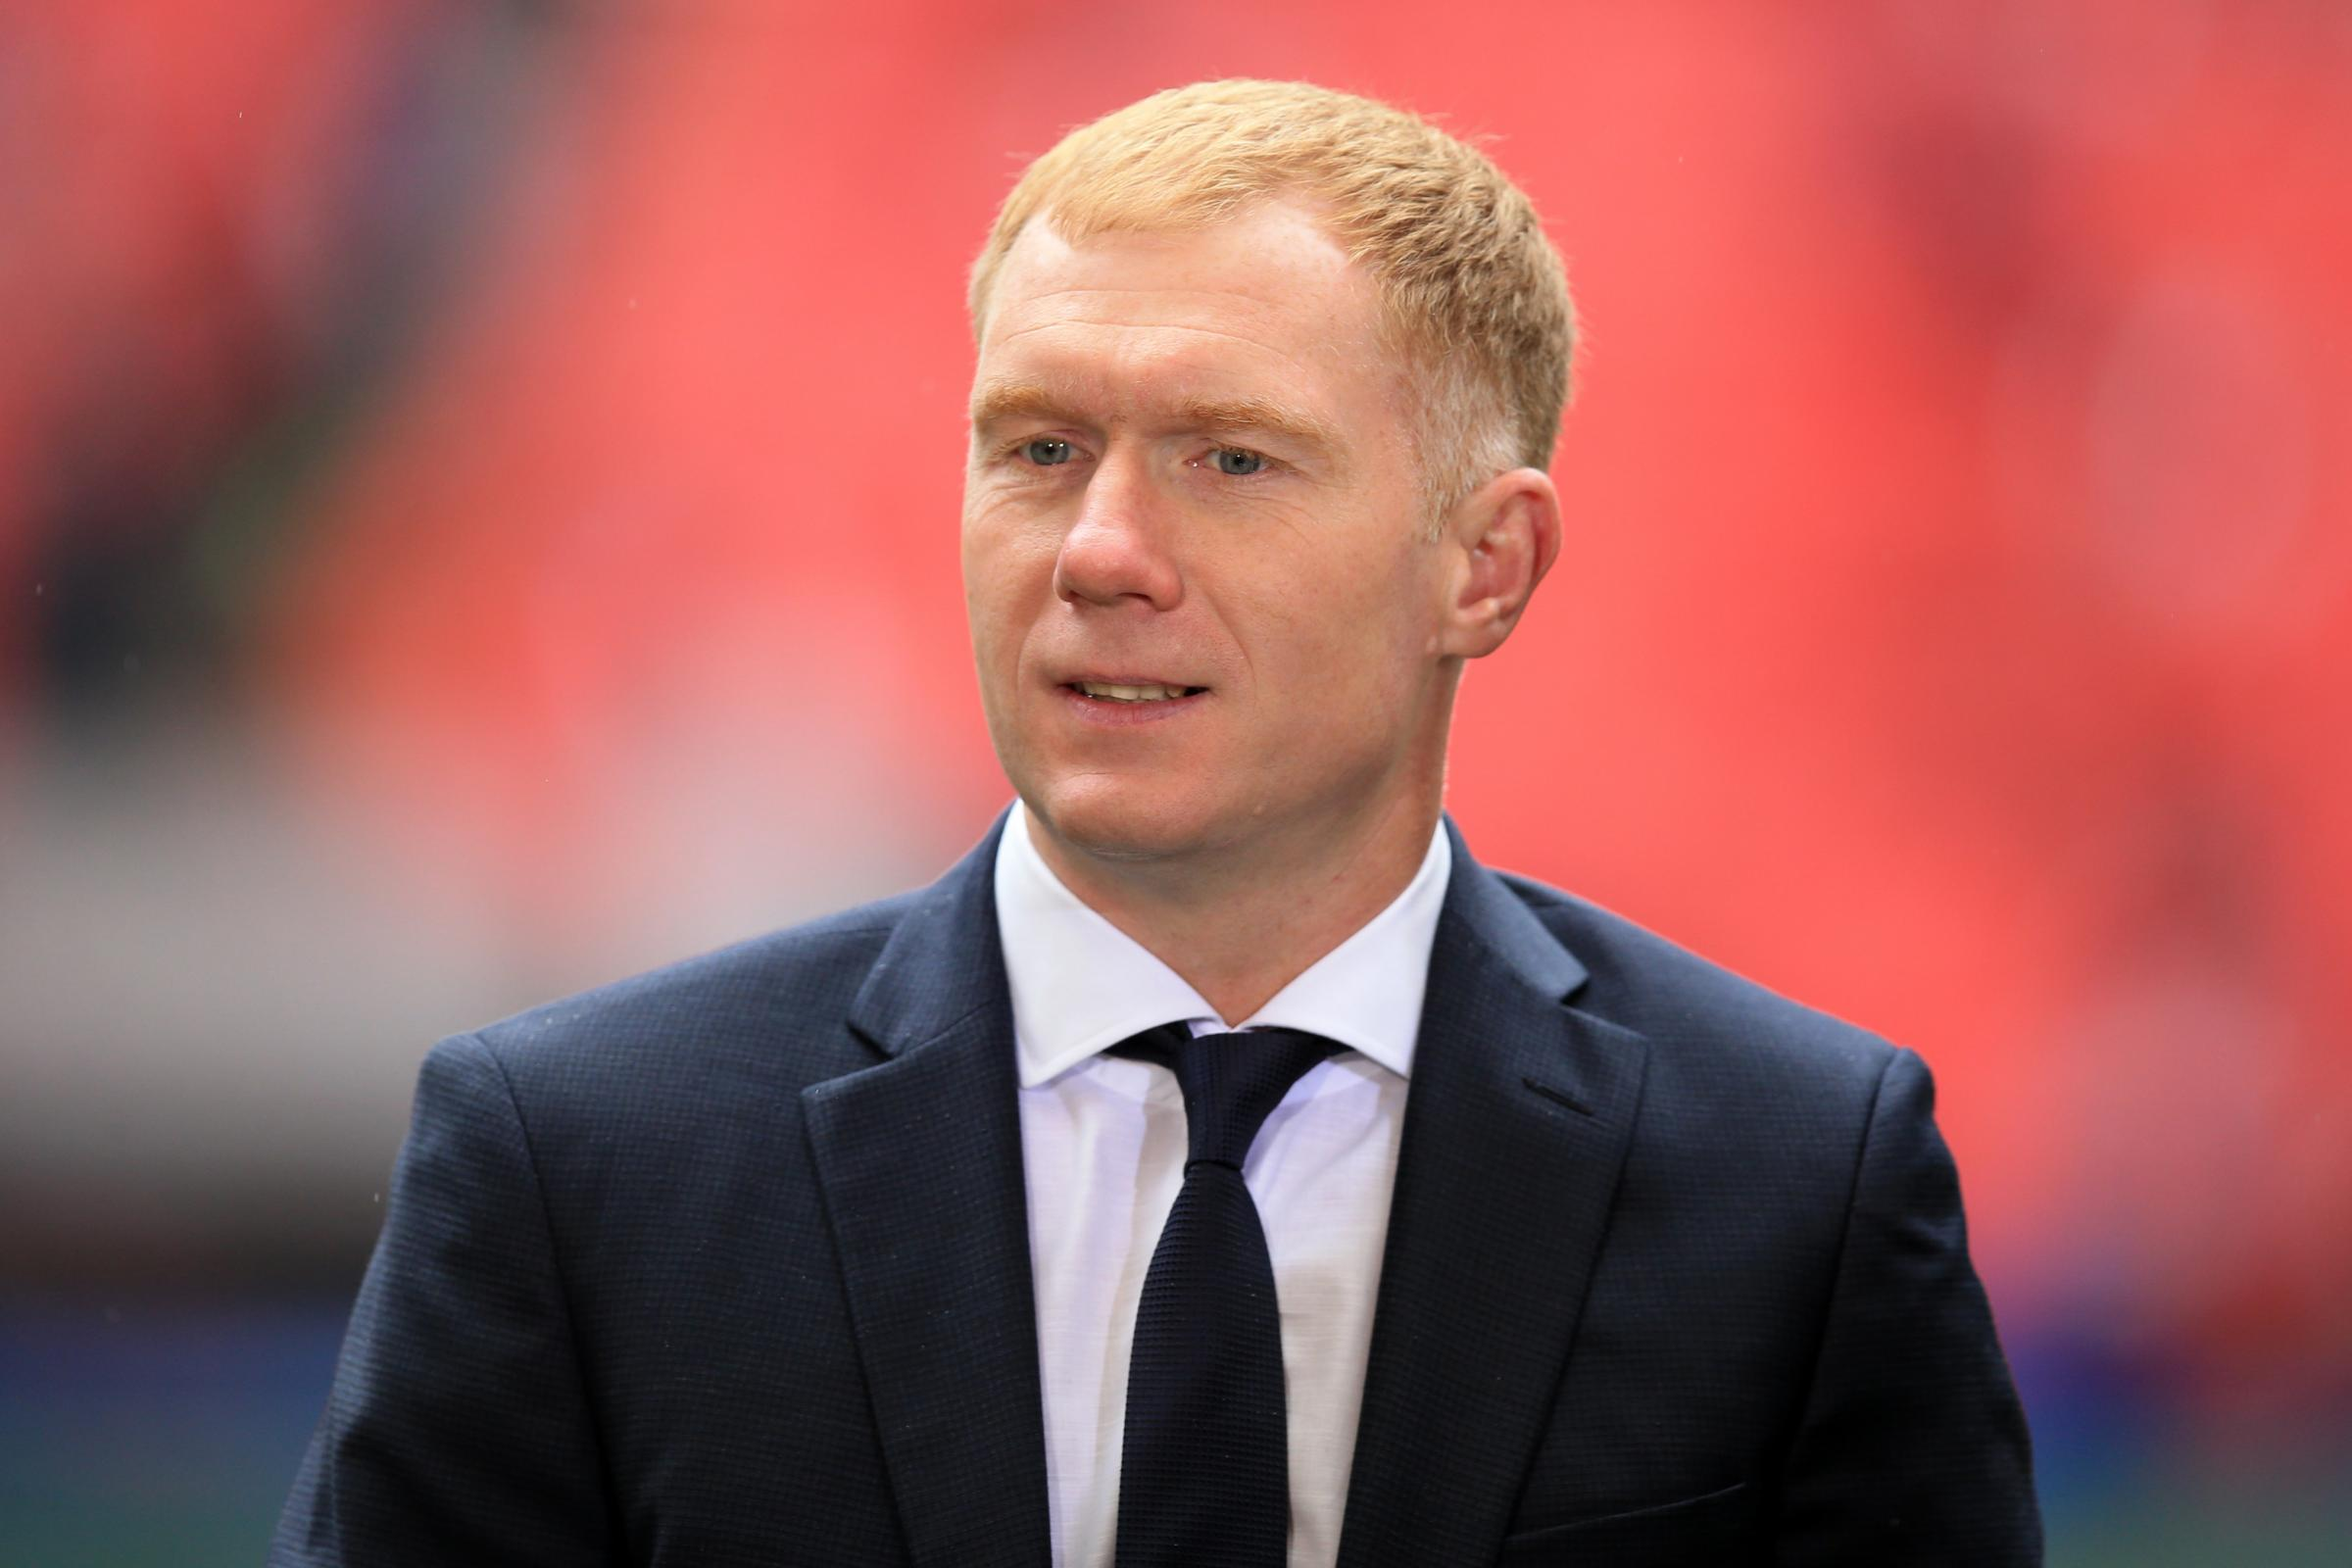 Paul Scholes is expected to be Oldham's new manager.